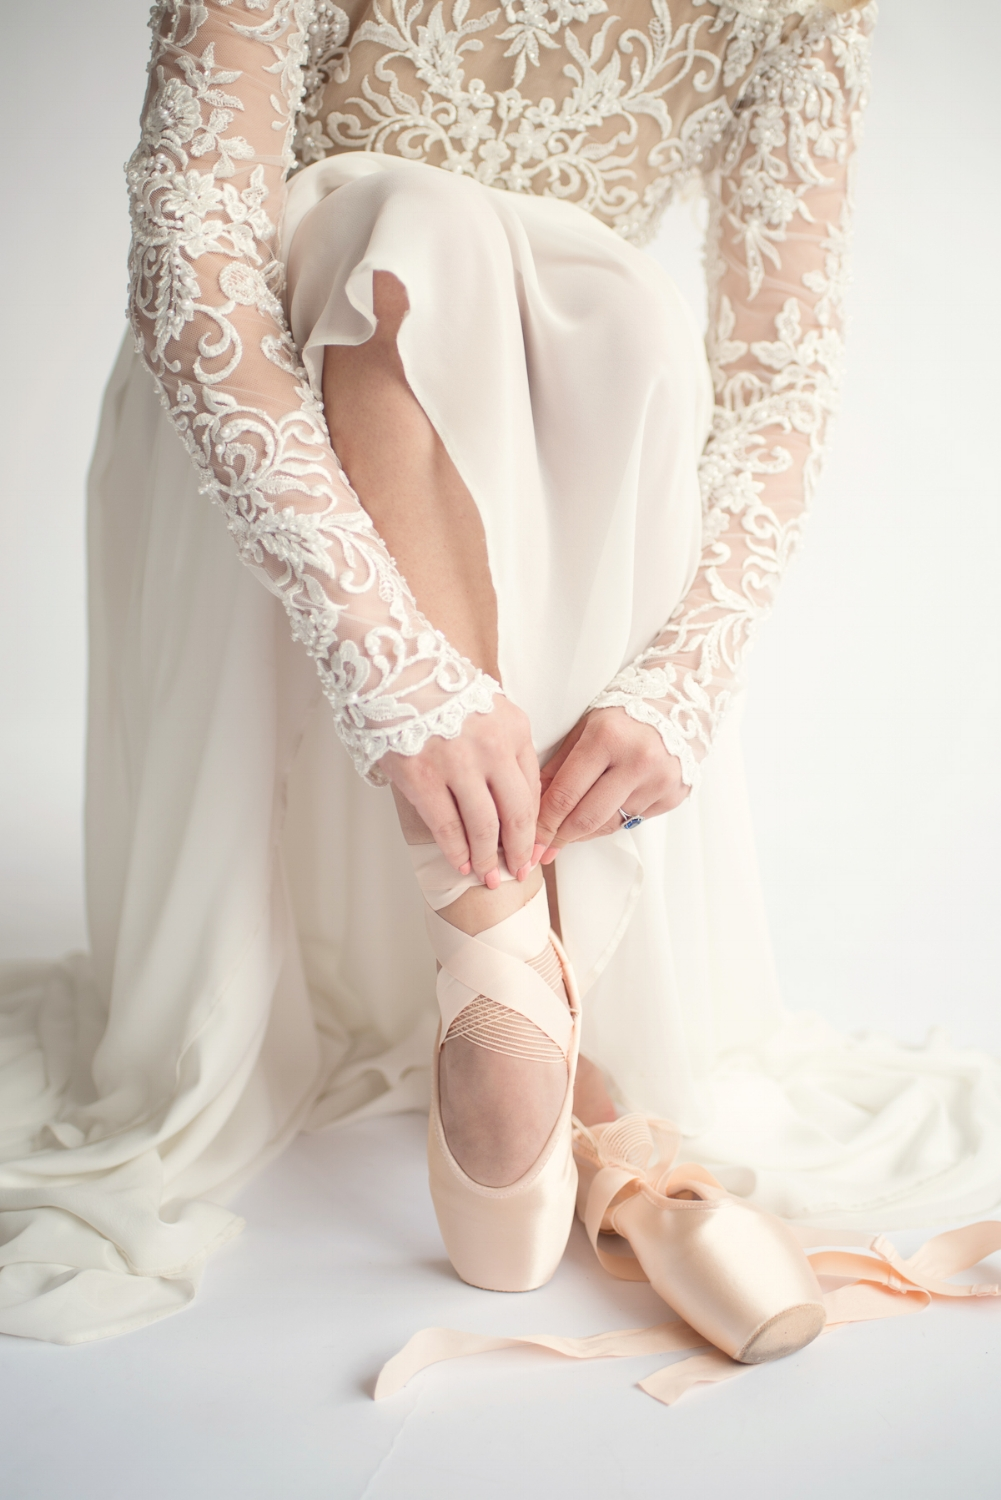 Ballet bridal editorial_Eva Tarnok Photography_34.jpg